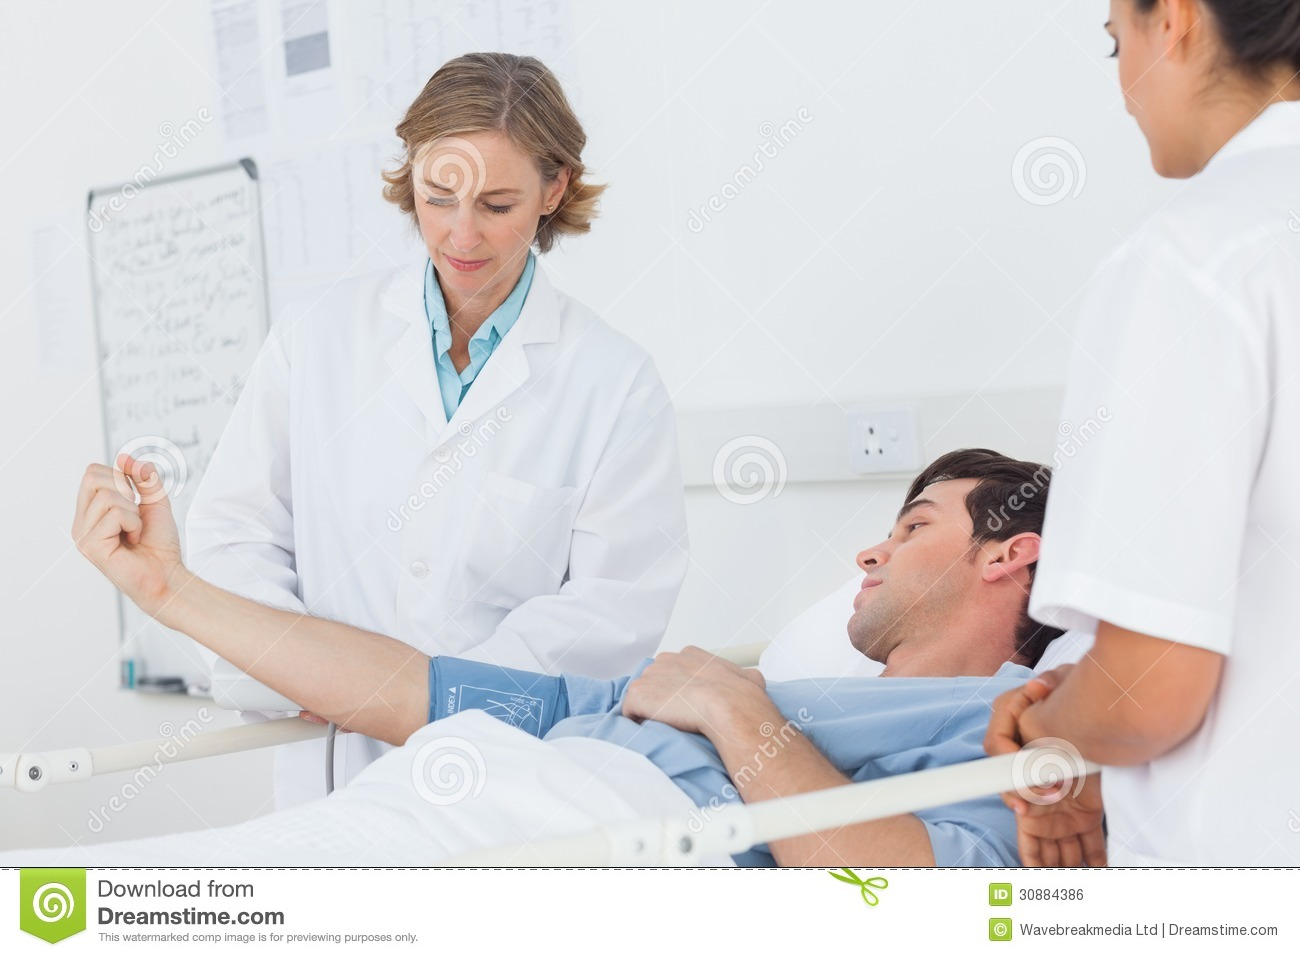 Doctors measuring the blood pressure of a male patient